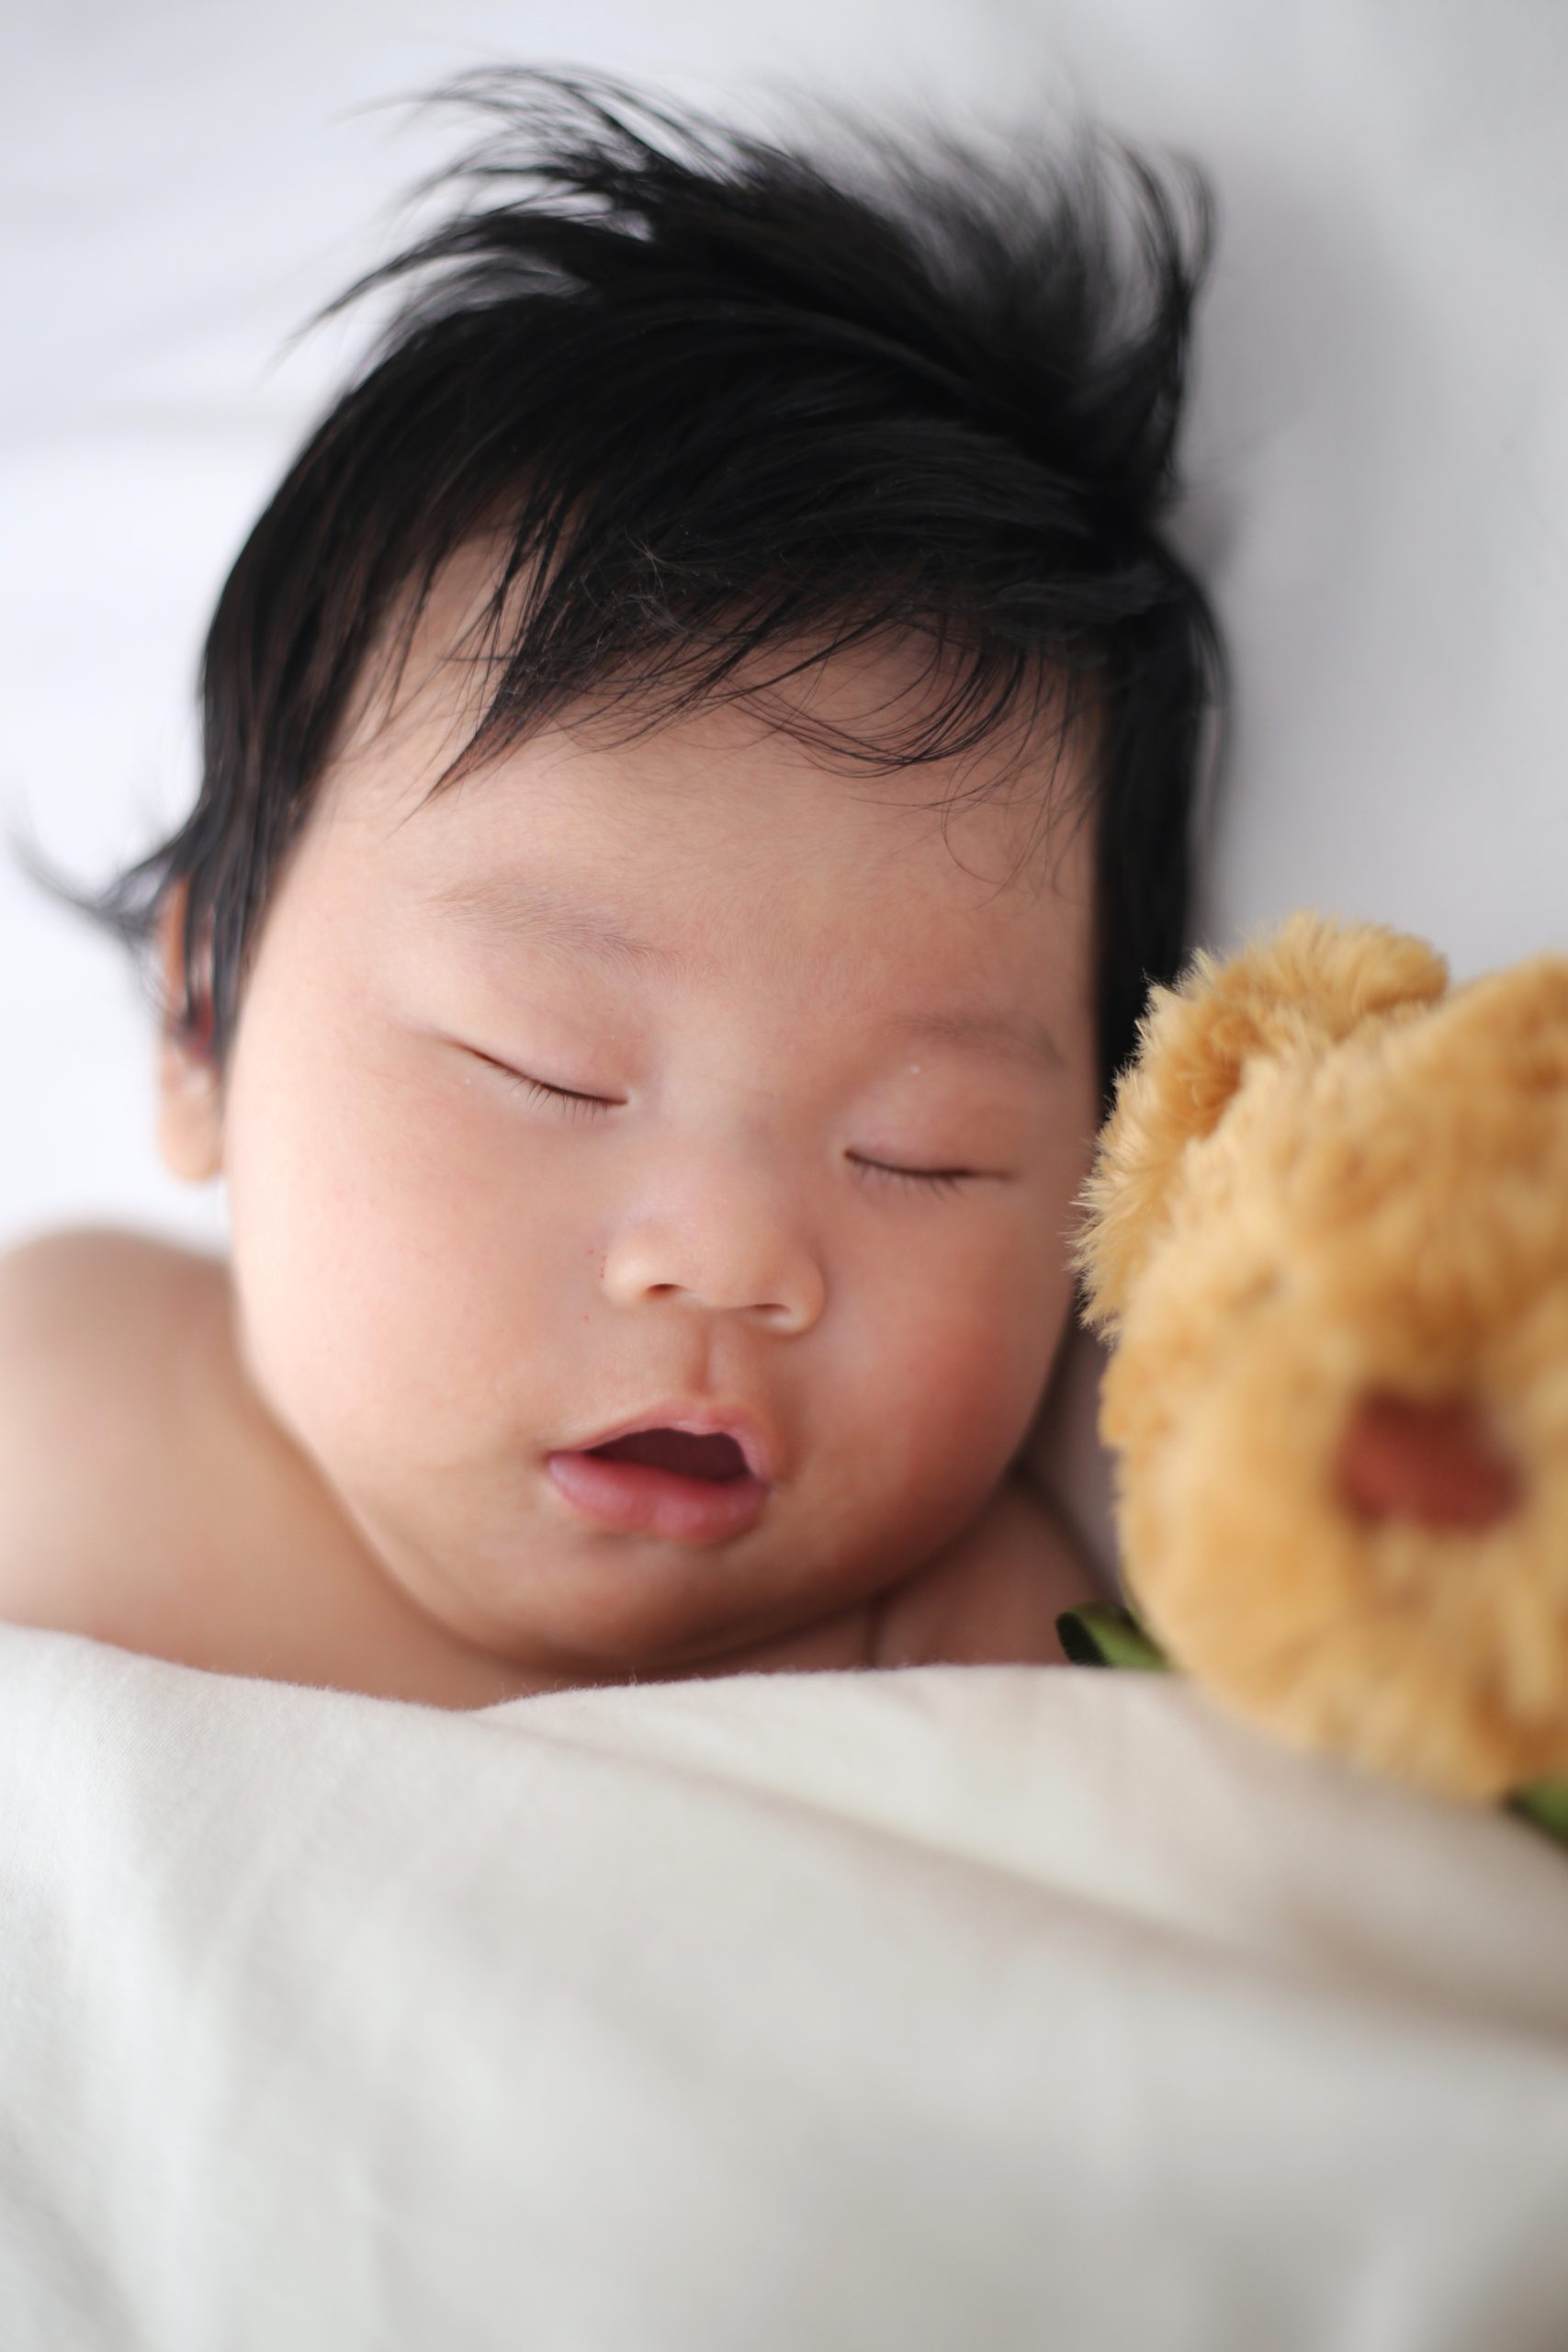 A baby sleeping next to a stuffed bear